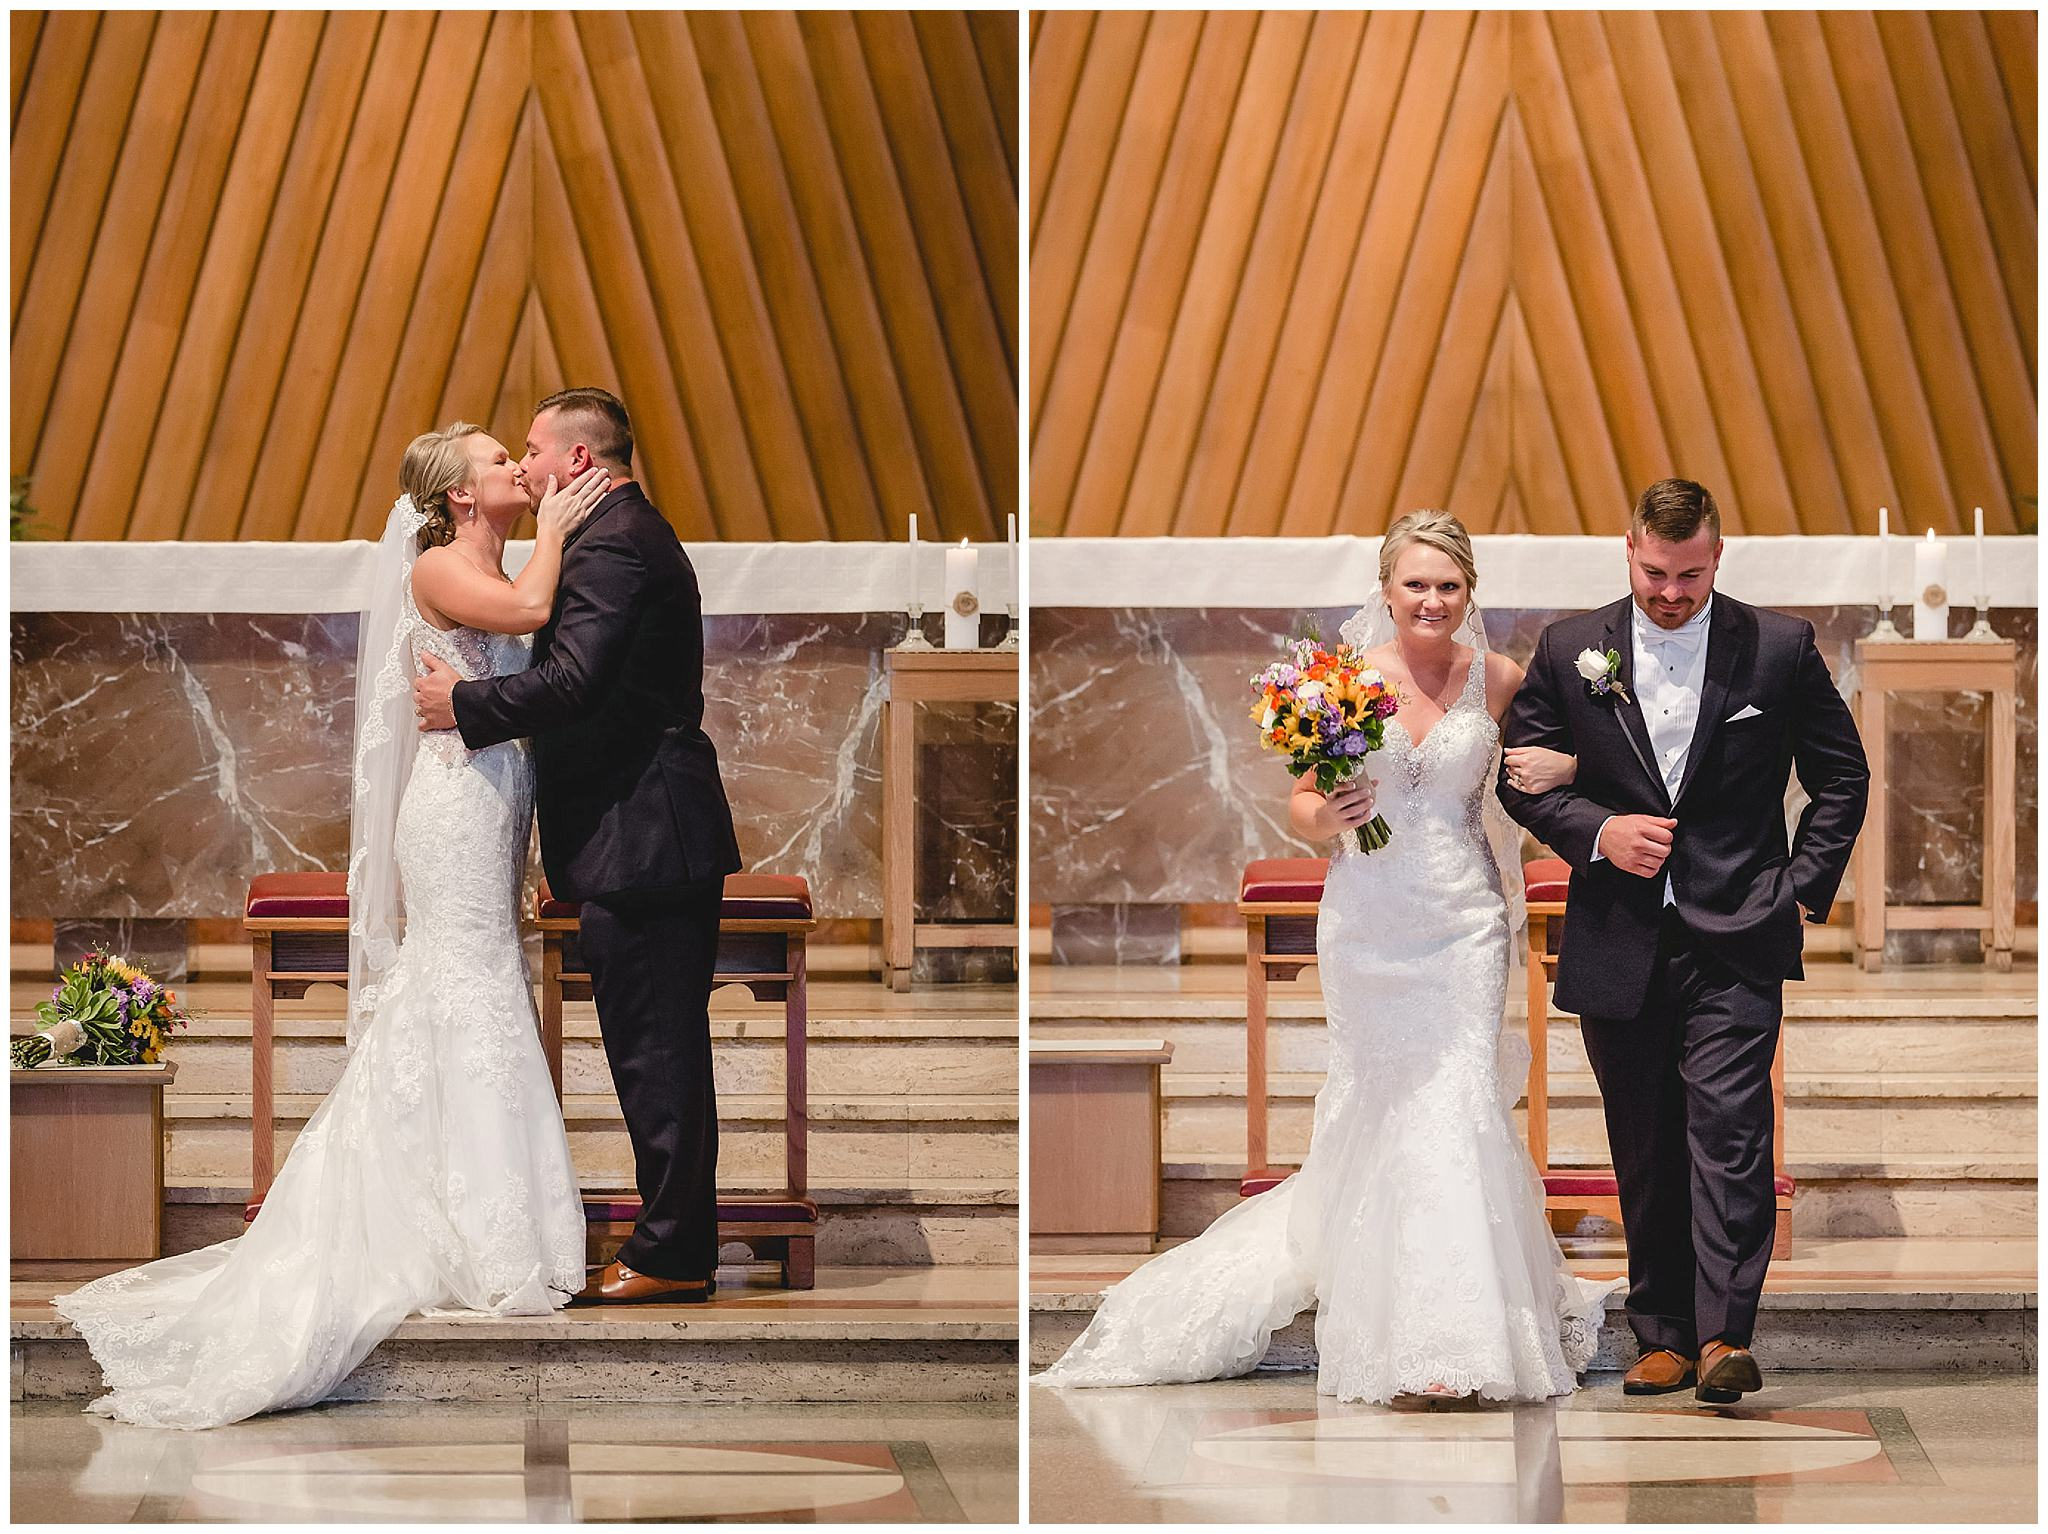 Newlyweds share their first kiss in St. Titus Church